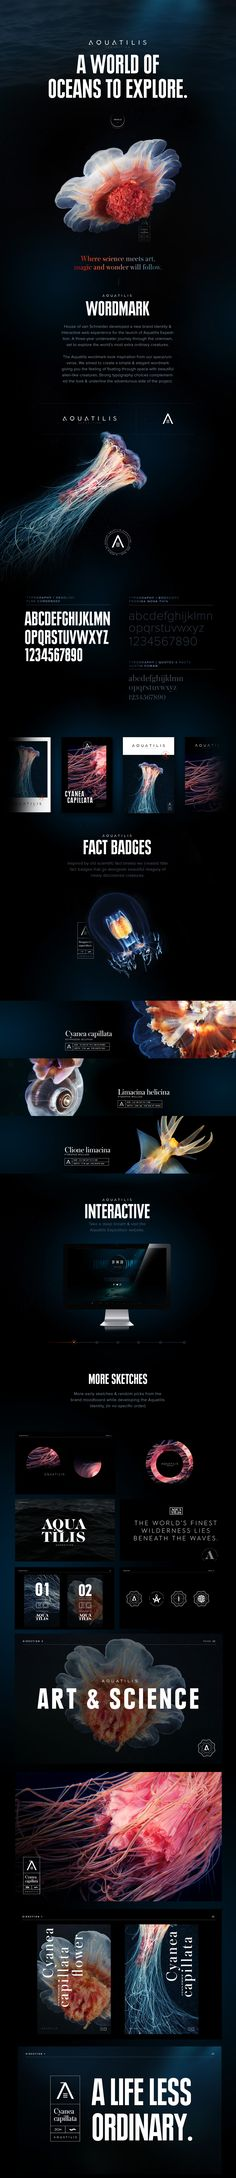 House of van Schneider developed a new brand identity & interactive web experience for the launch of Aquatilis Expedition in collaboration with Alexander Semenov. A three-year underwater journey through the unknown, set to explore the world's most extra o…